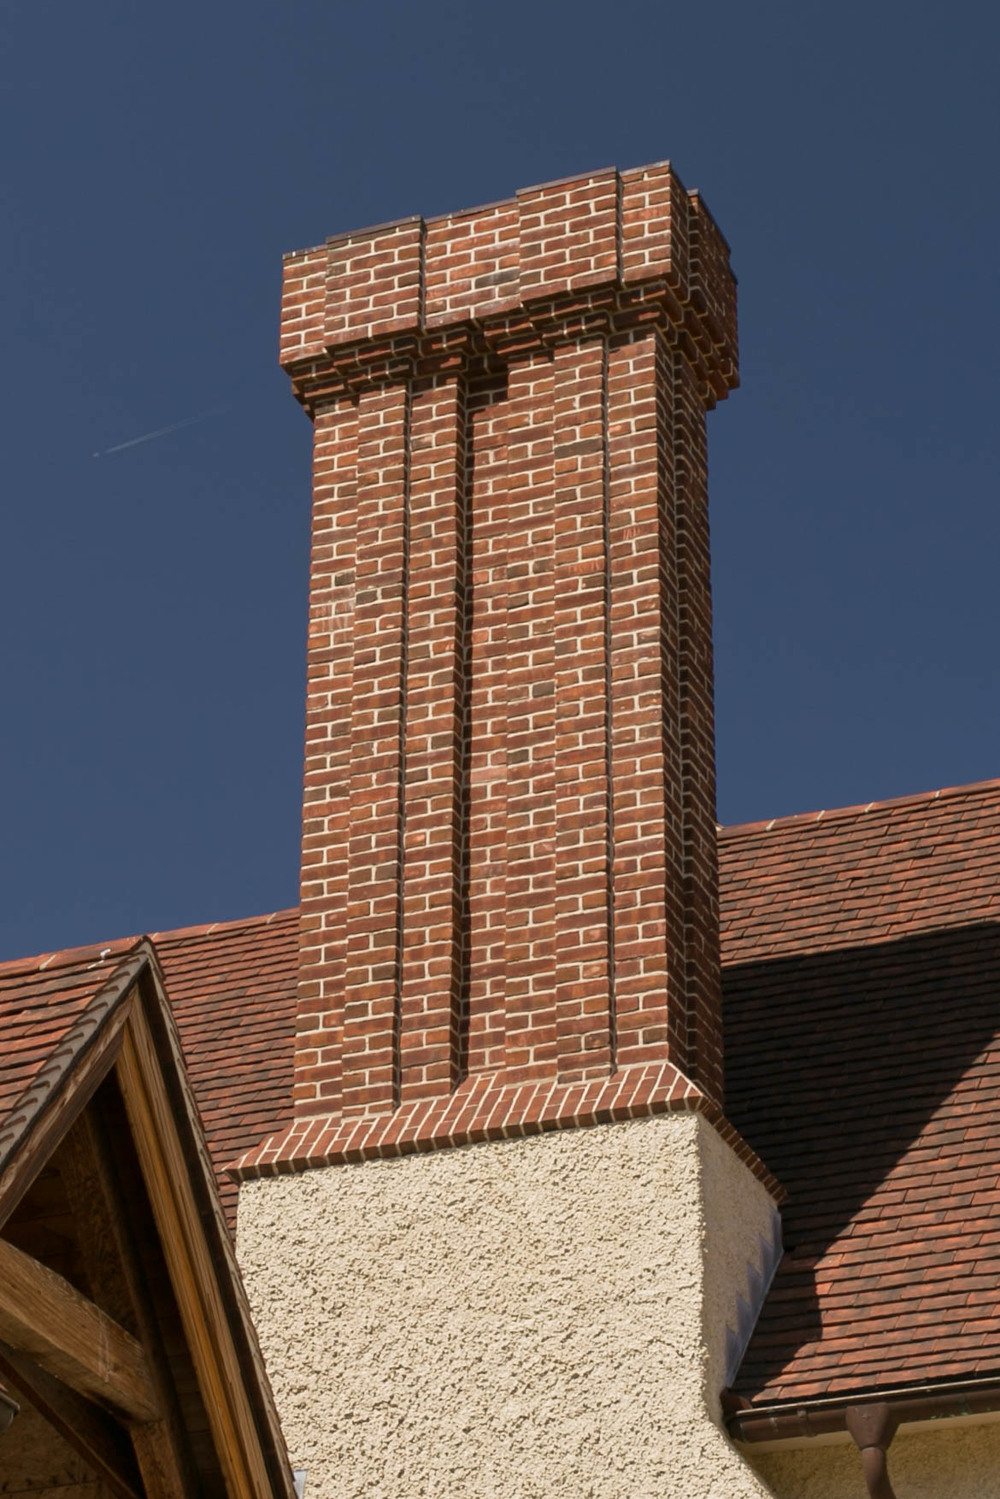 Lutyens designed this chimney for Munstead Wood in Surrey   in 1896